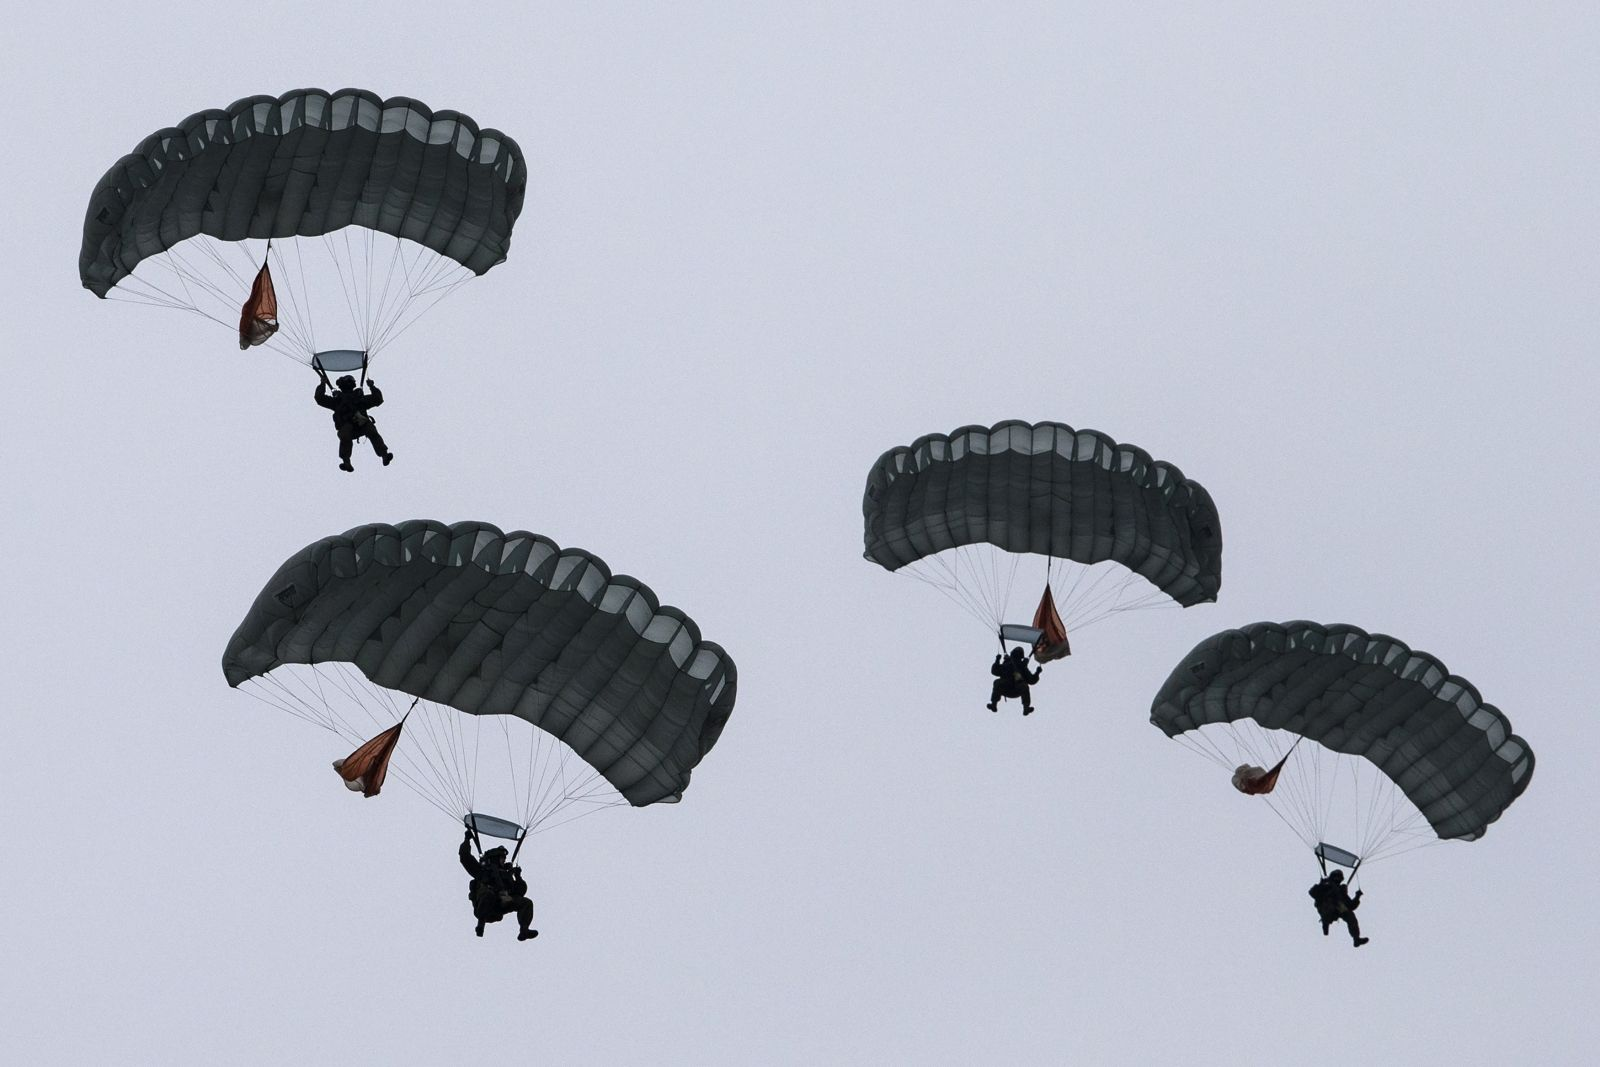 Russian paratroopers near Baltic border